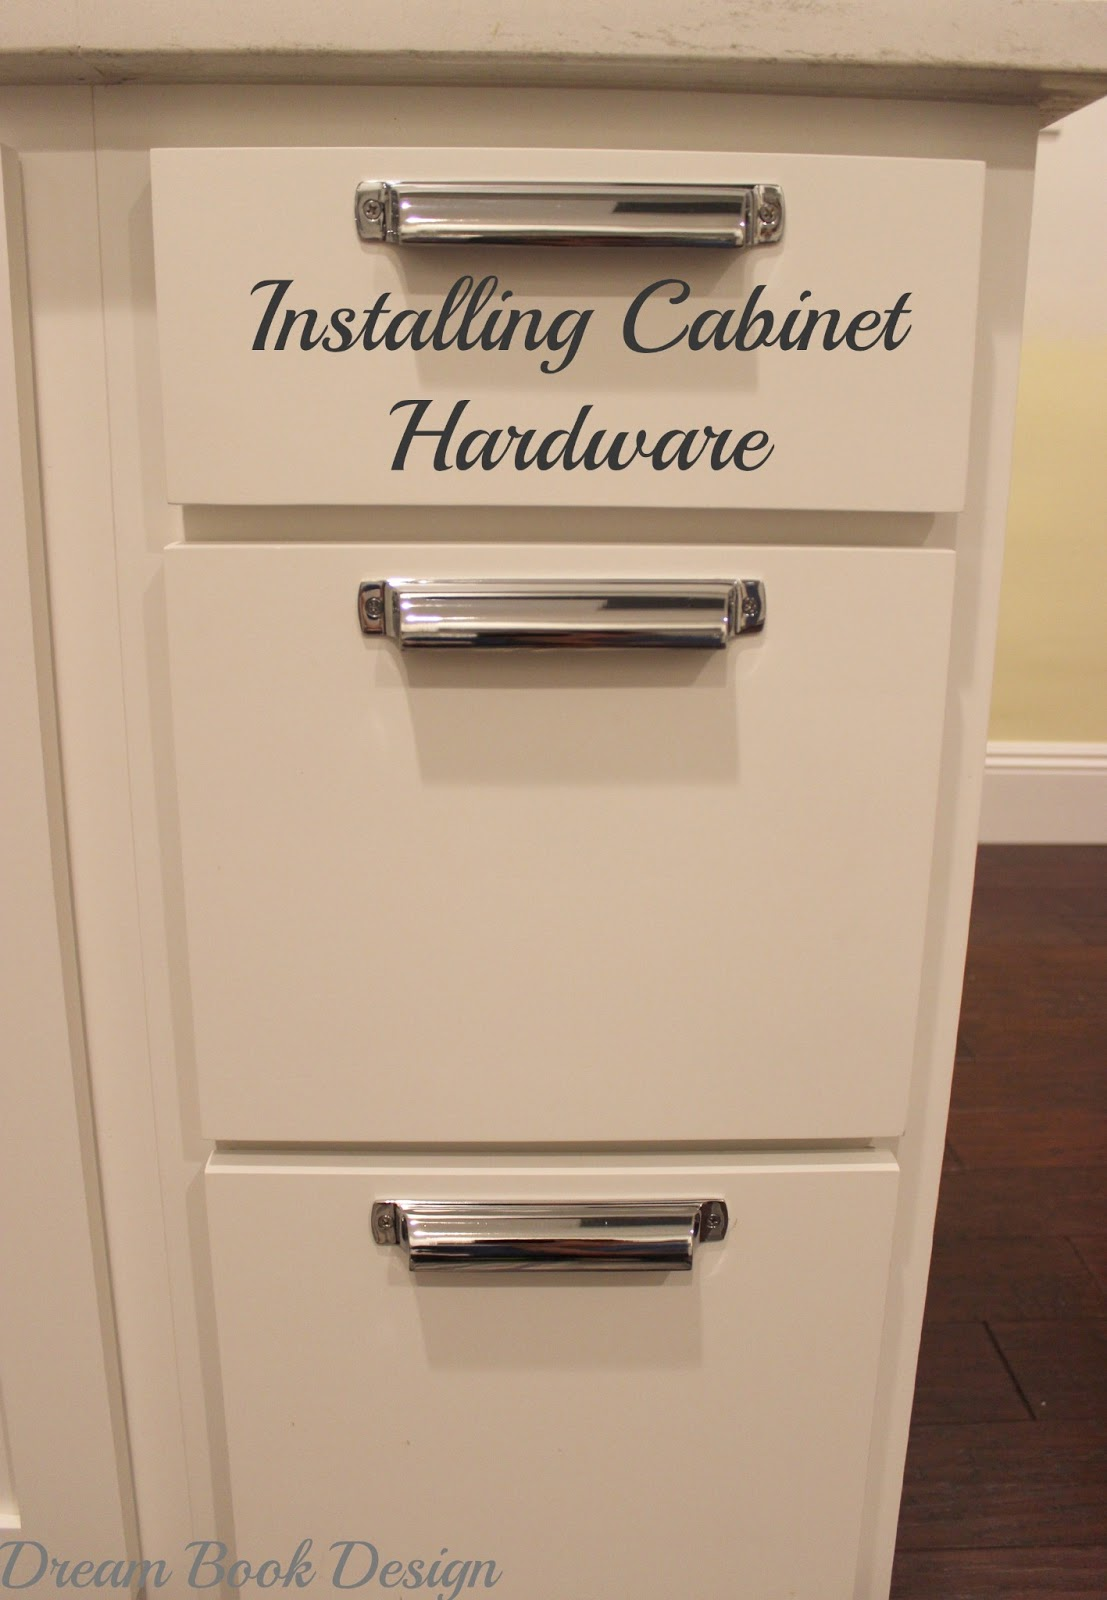 How To Install Kitchen Cabinet Hardware How To Install Kitchen Cabinet Hardware Tutorial Dream